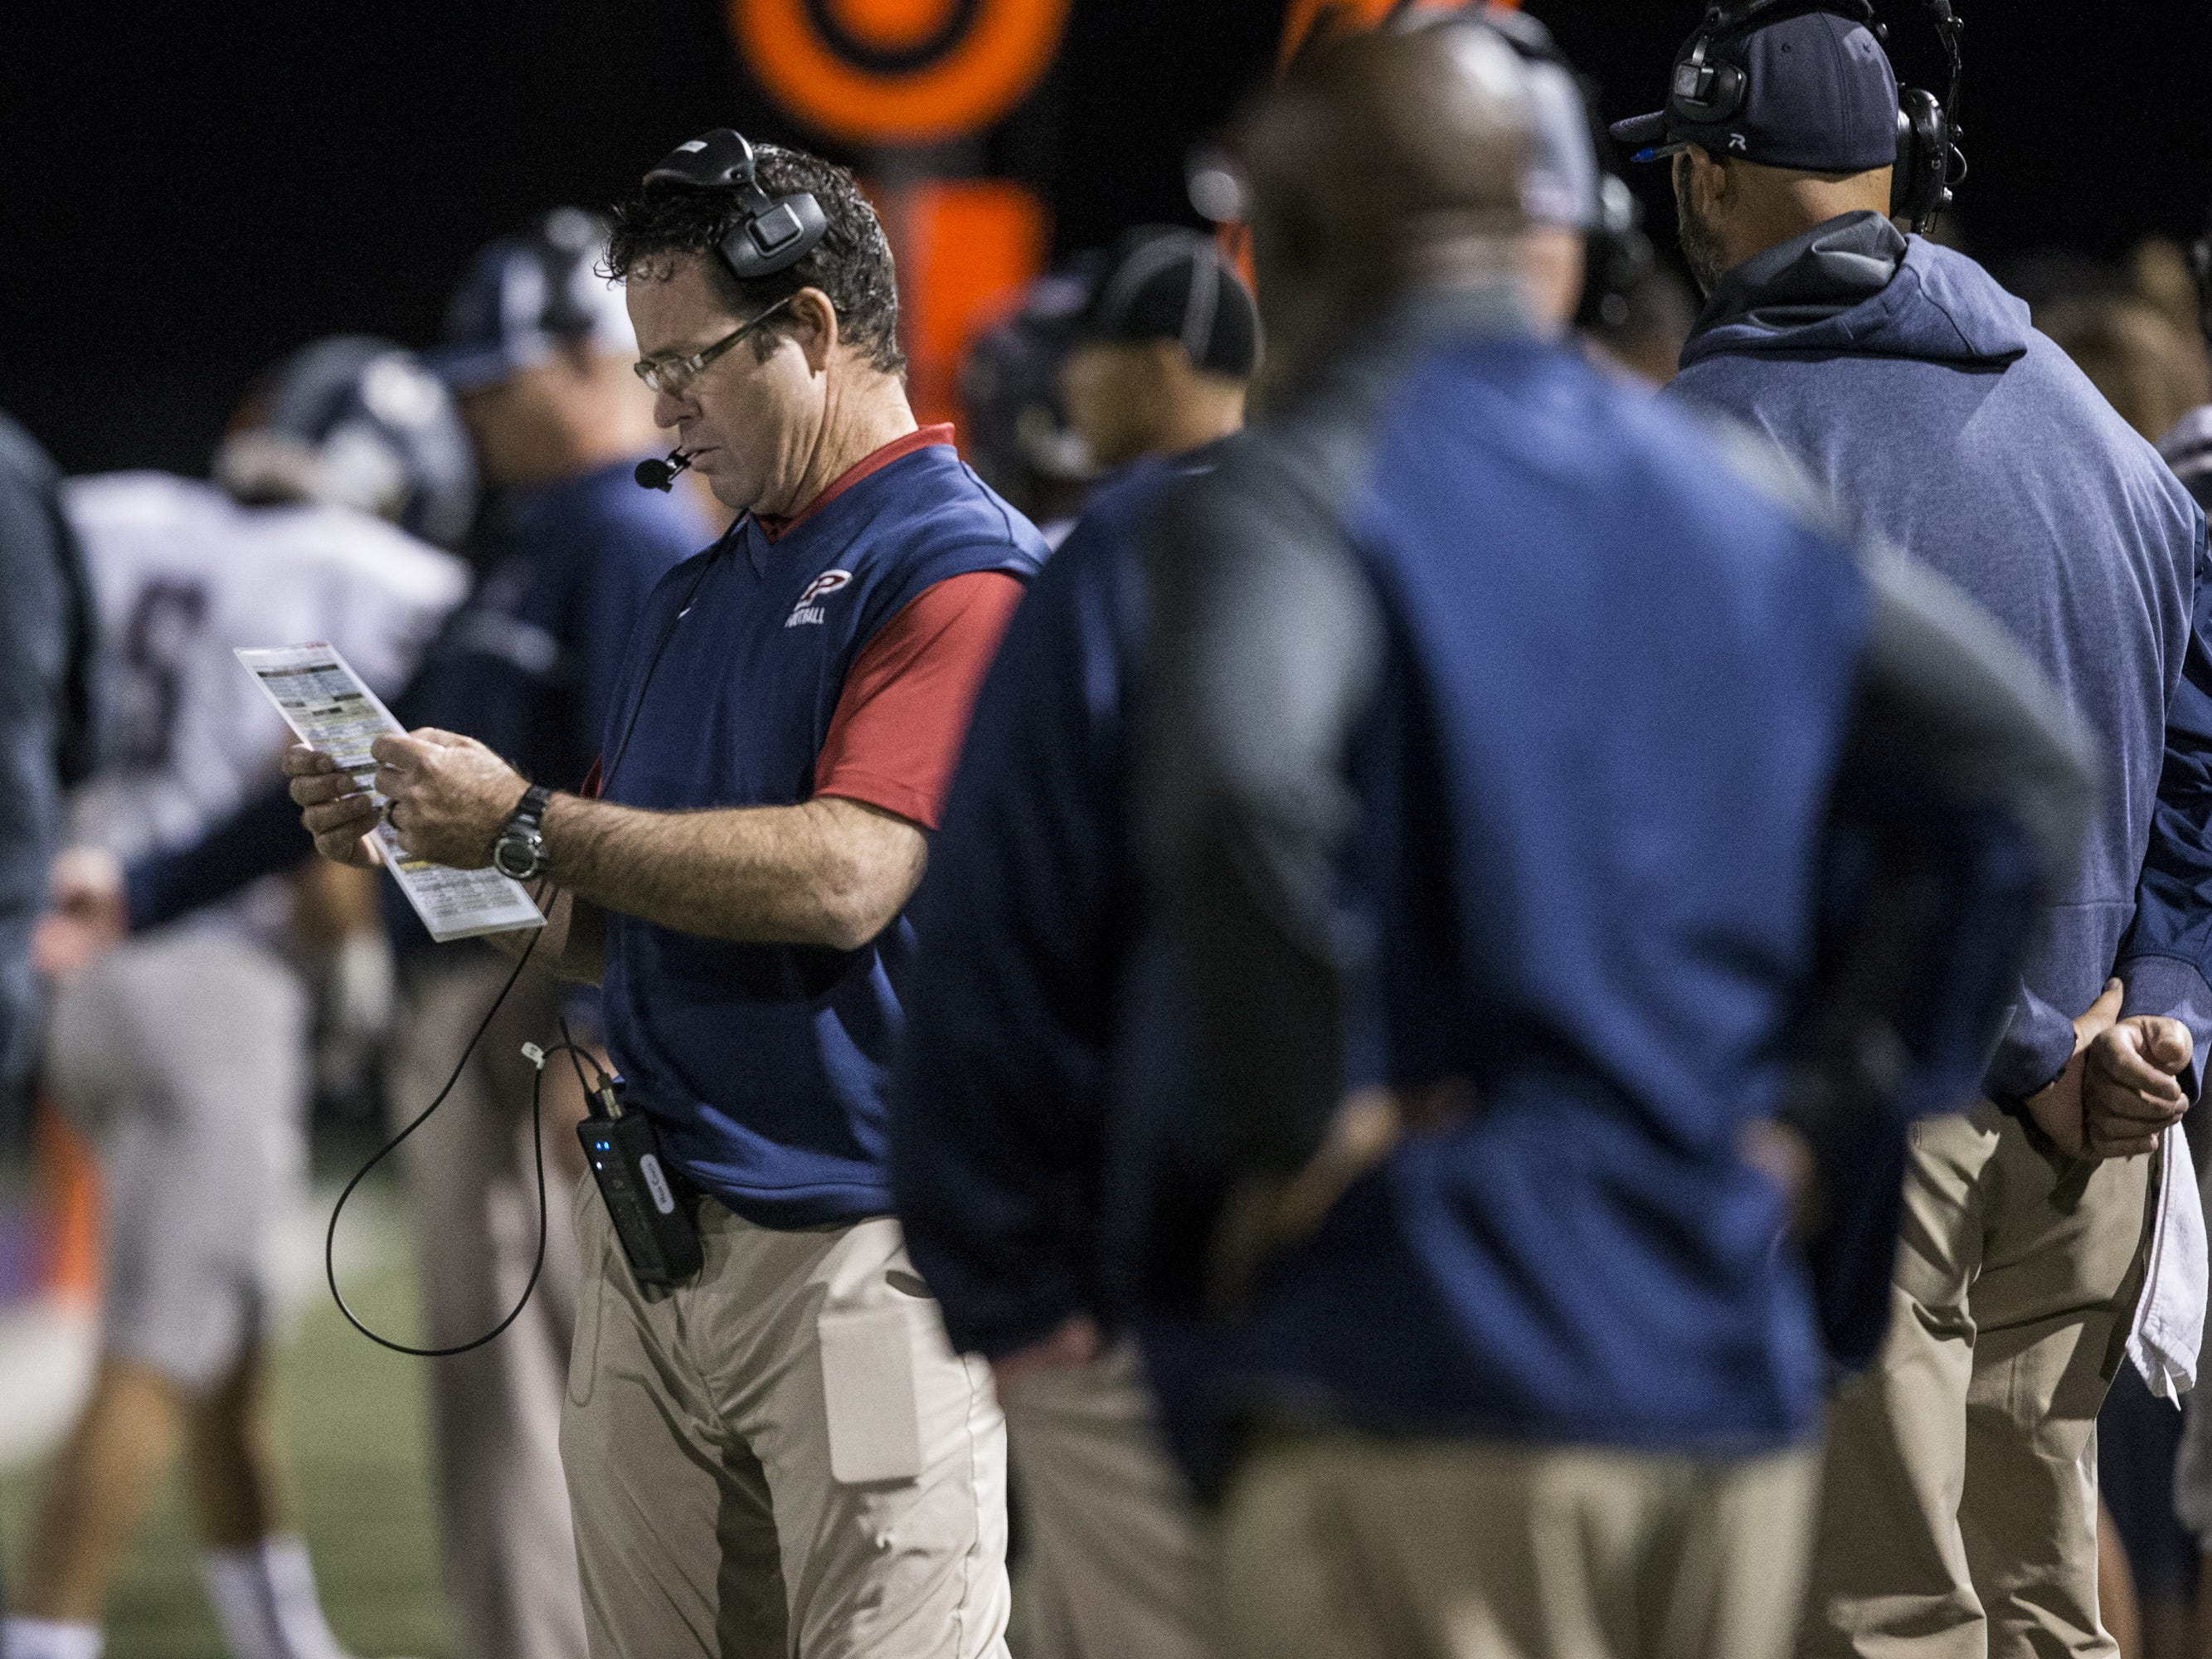 Perry head coach Preston Jones looks at a play sheet during the game against Pinnacle on Friday, Nov. 16, 2018, at North Canyon High School in Phoenix.  #azhsb